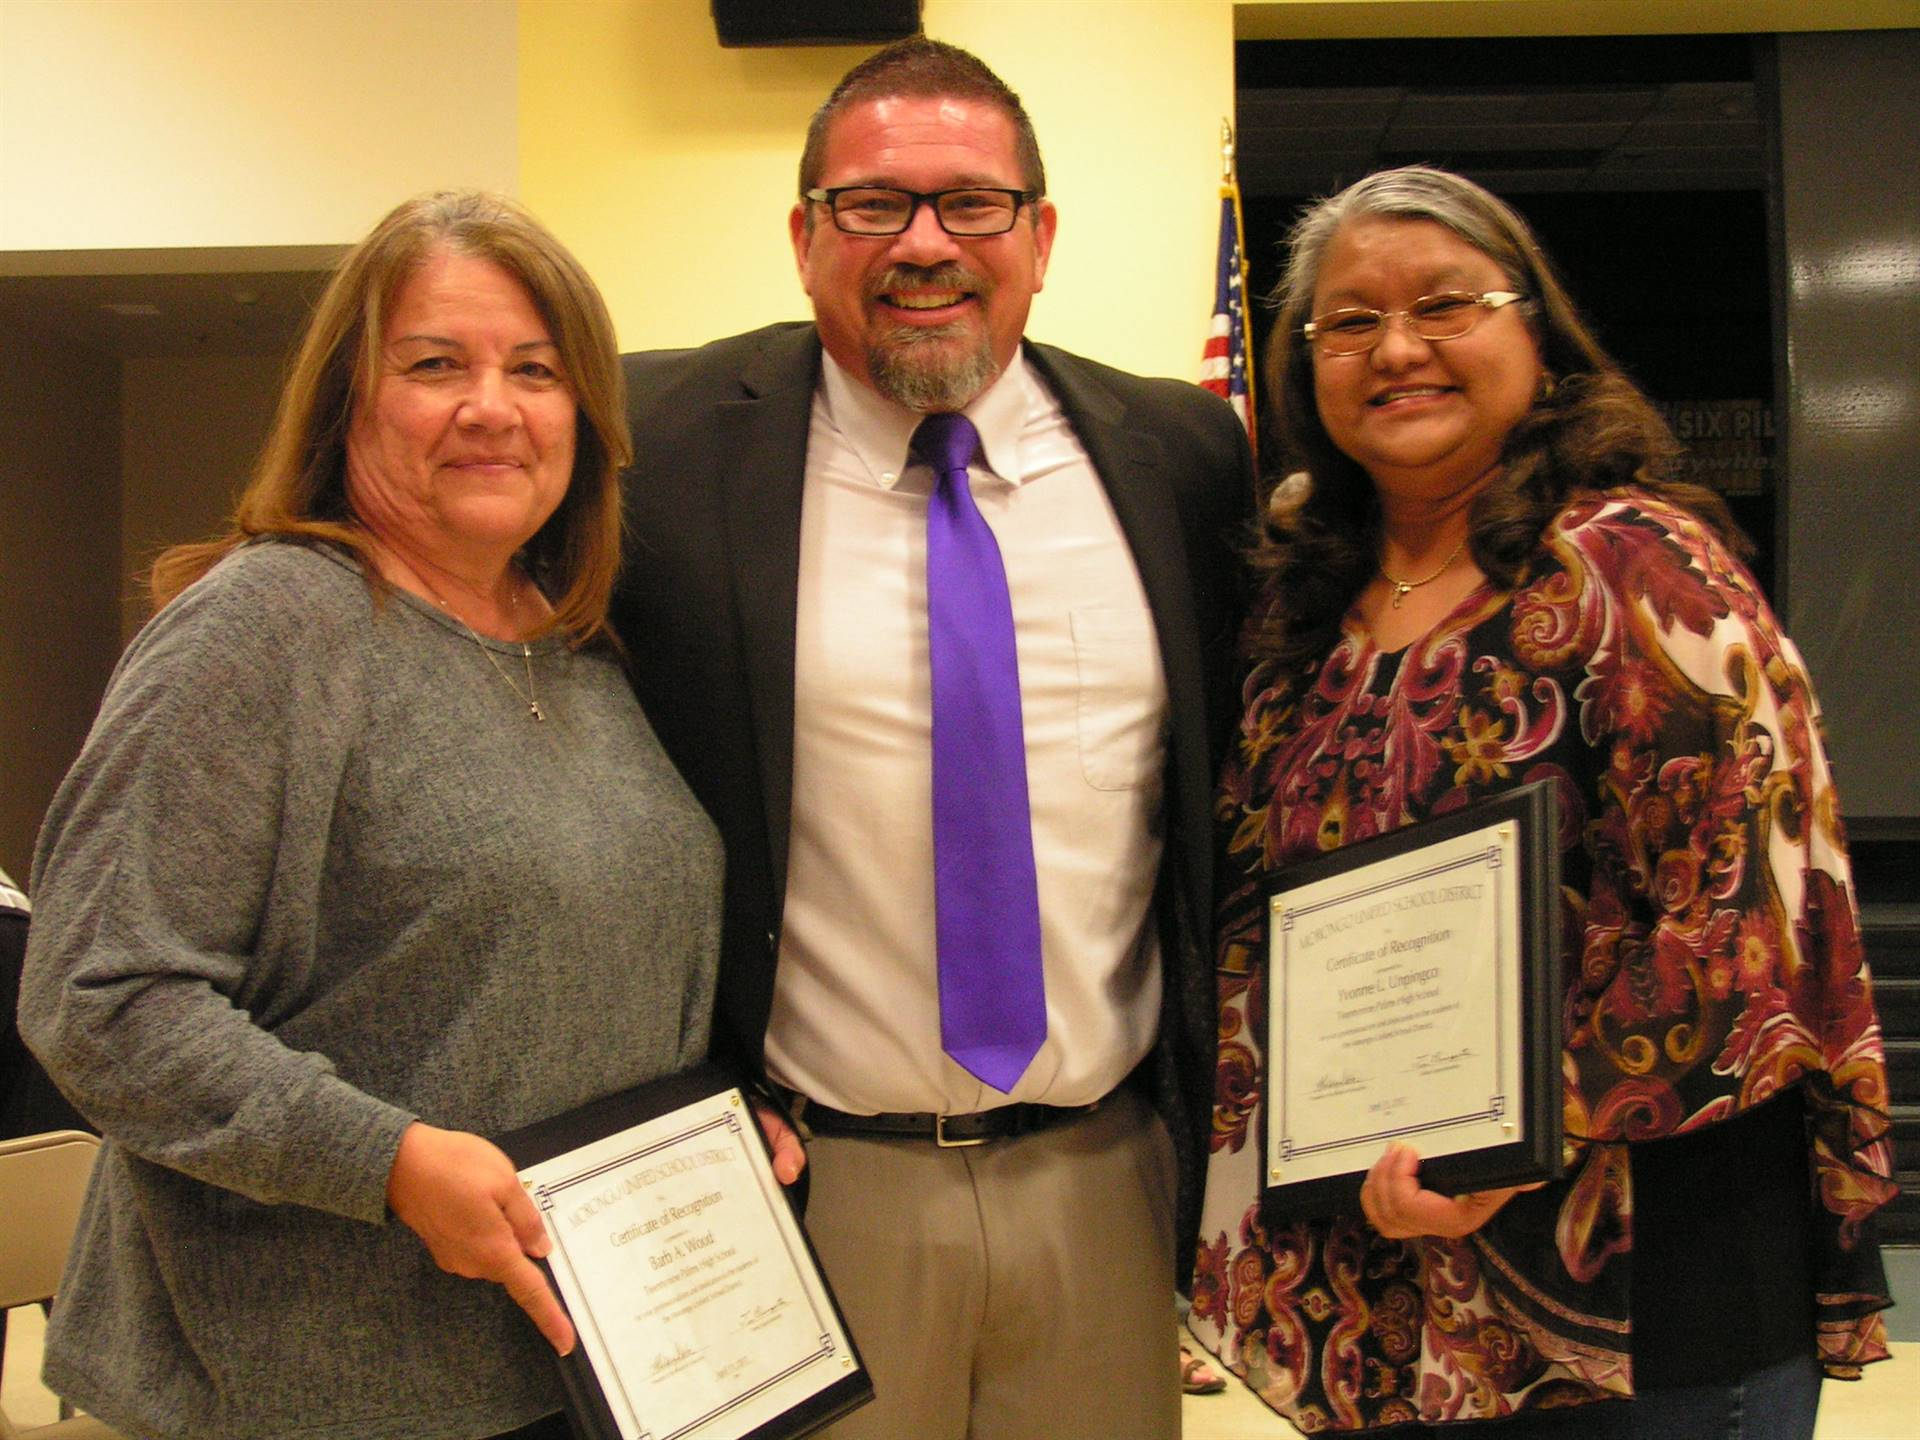 29 PALMS HIGH SCHOOL: BARB WOOD, JUSTIN MONICAL, YVONNE UNPINGCO